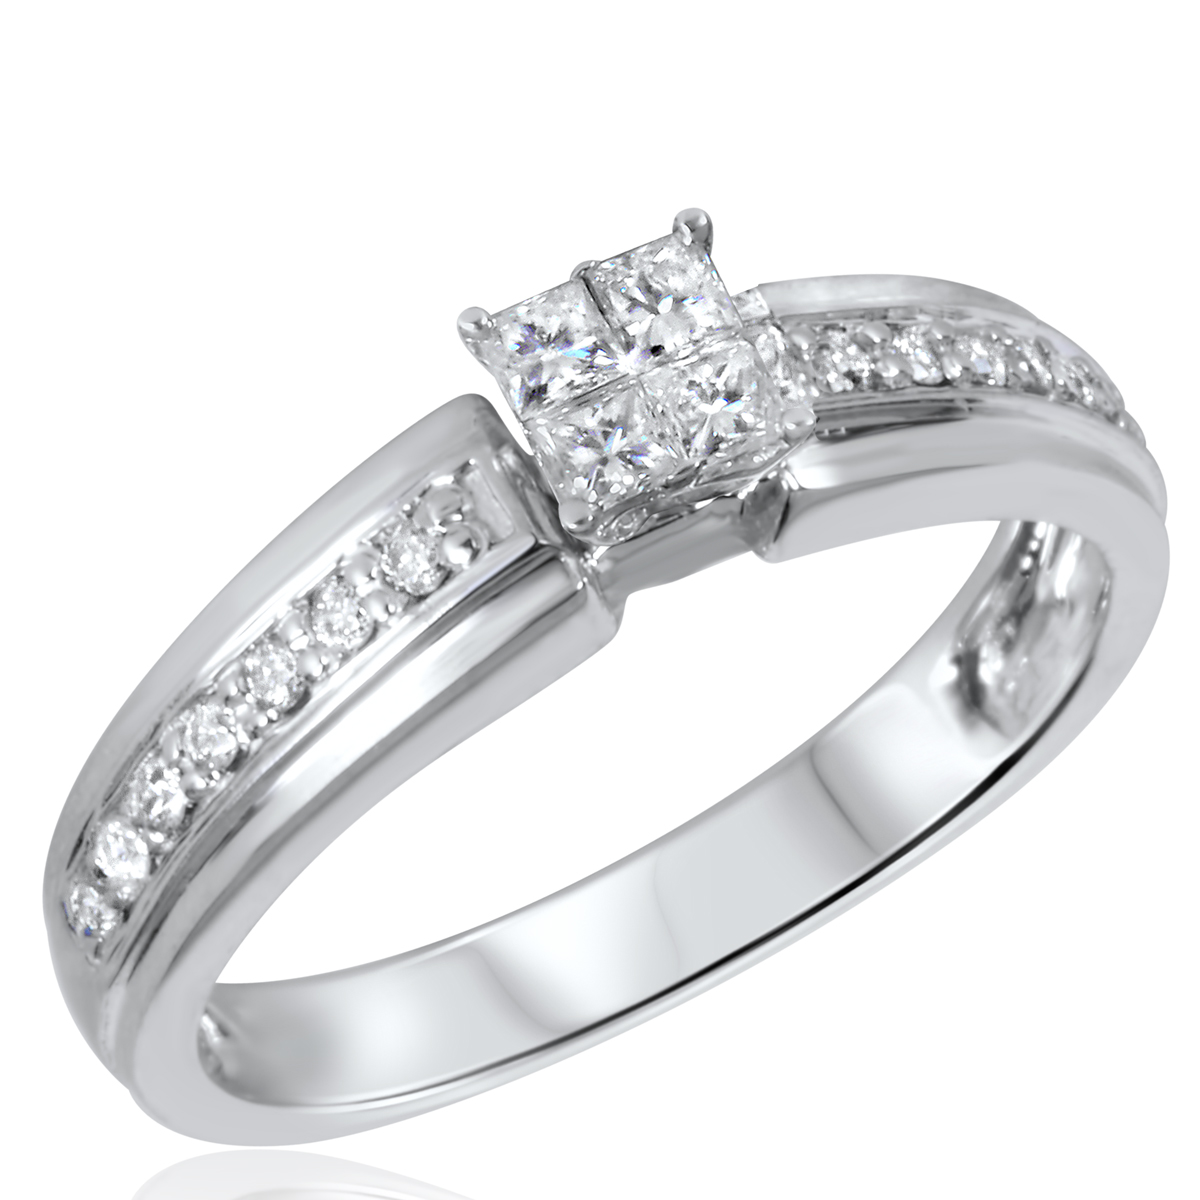 3/8 CT. T.W. Diamond Ladies Engagement Ring 14K White Gold- Size 8